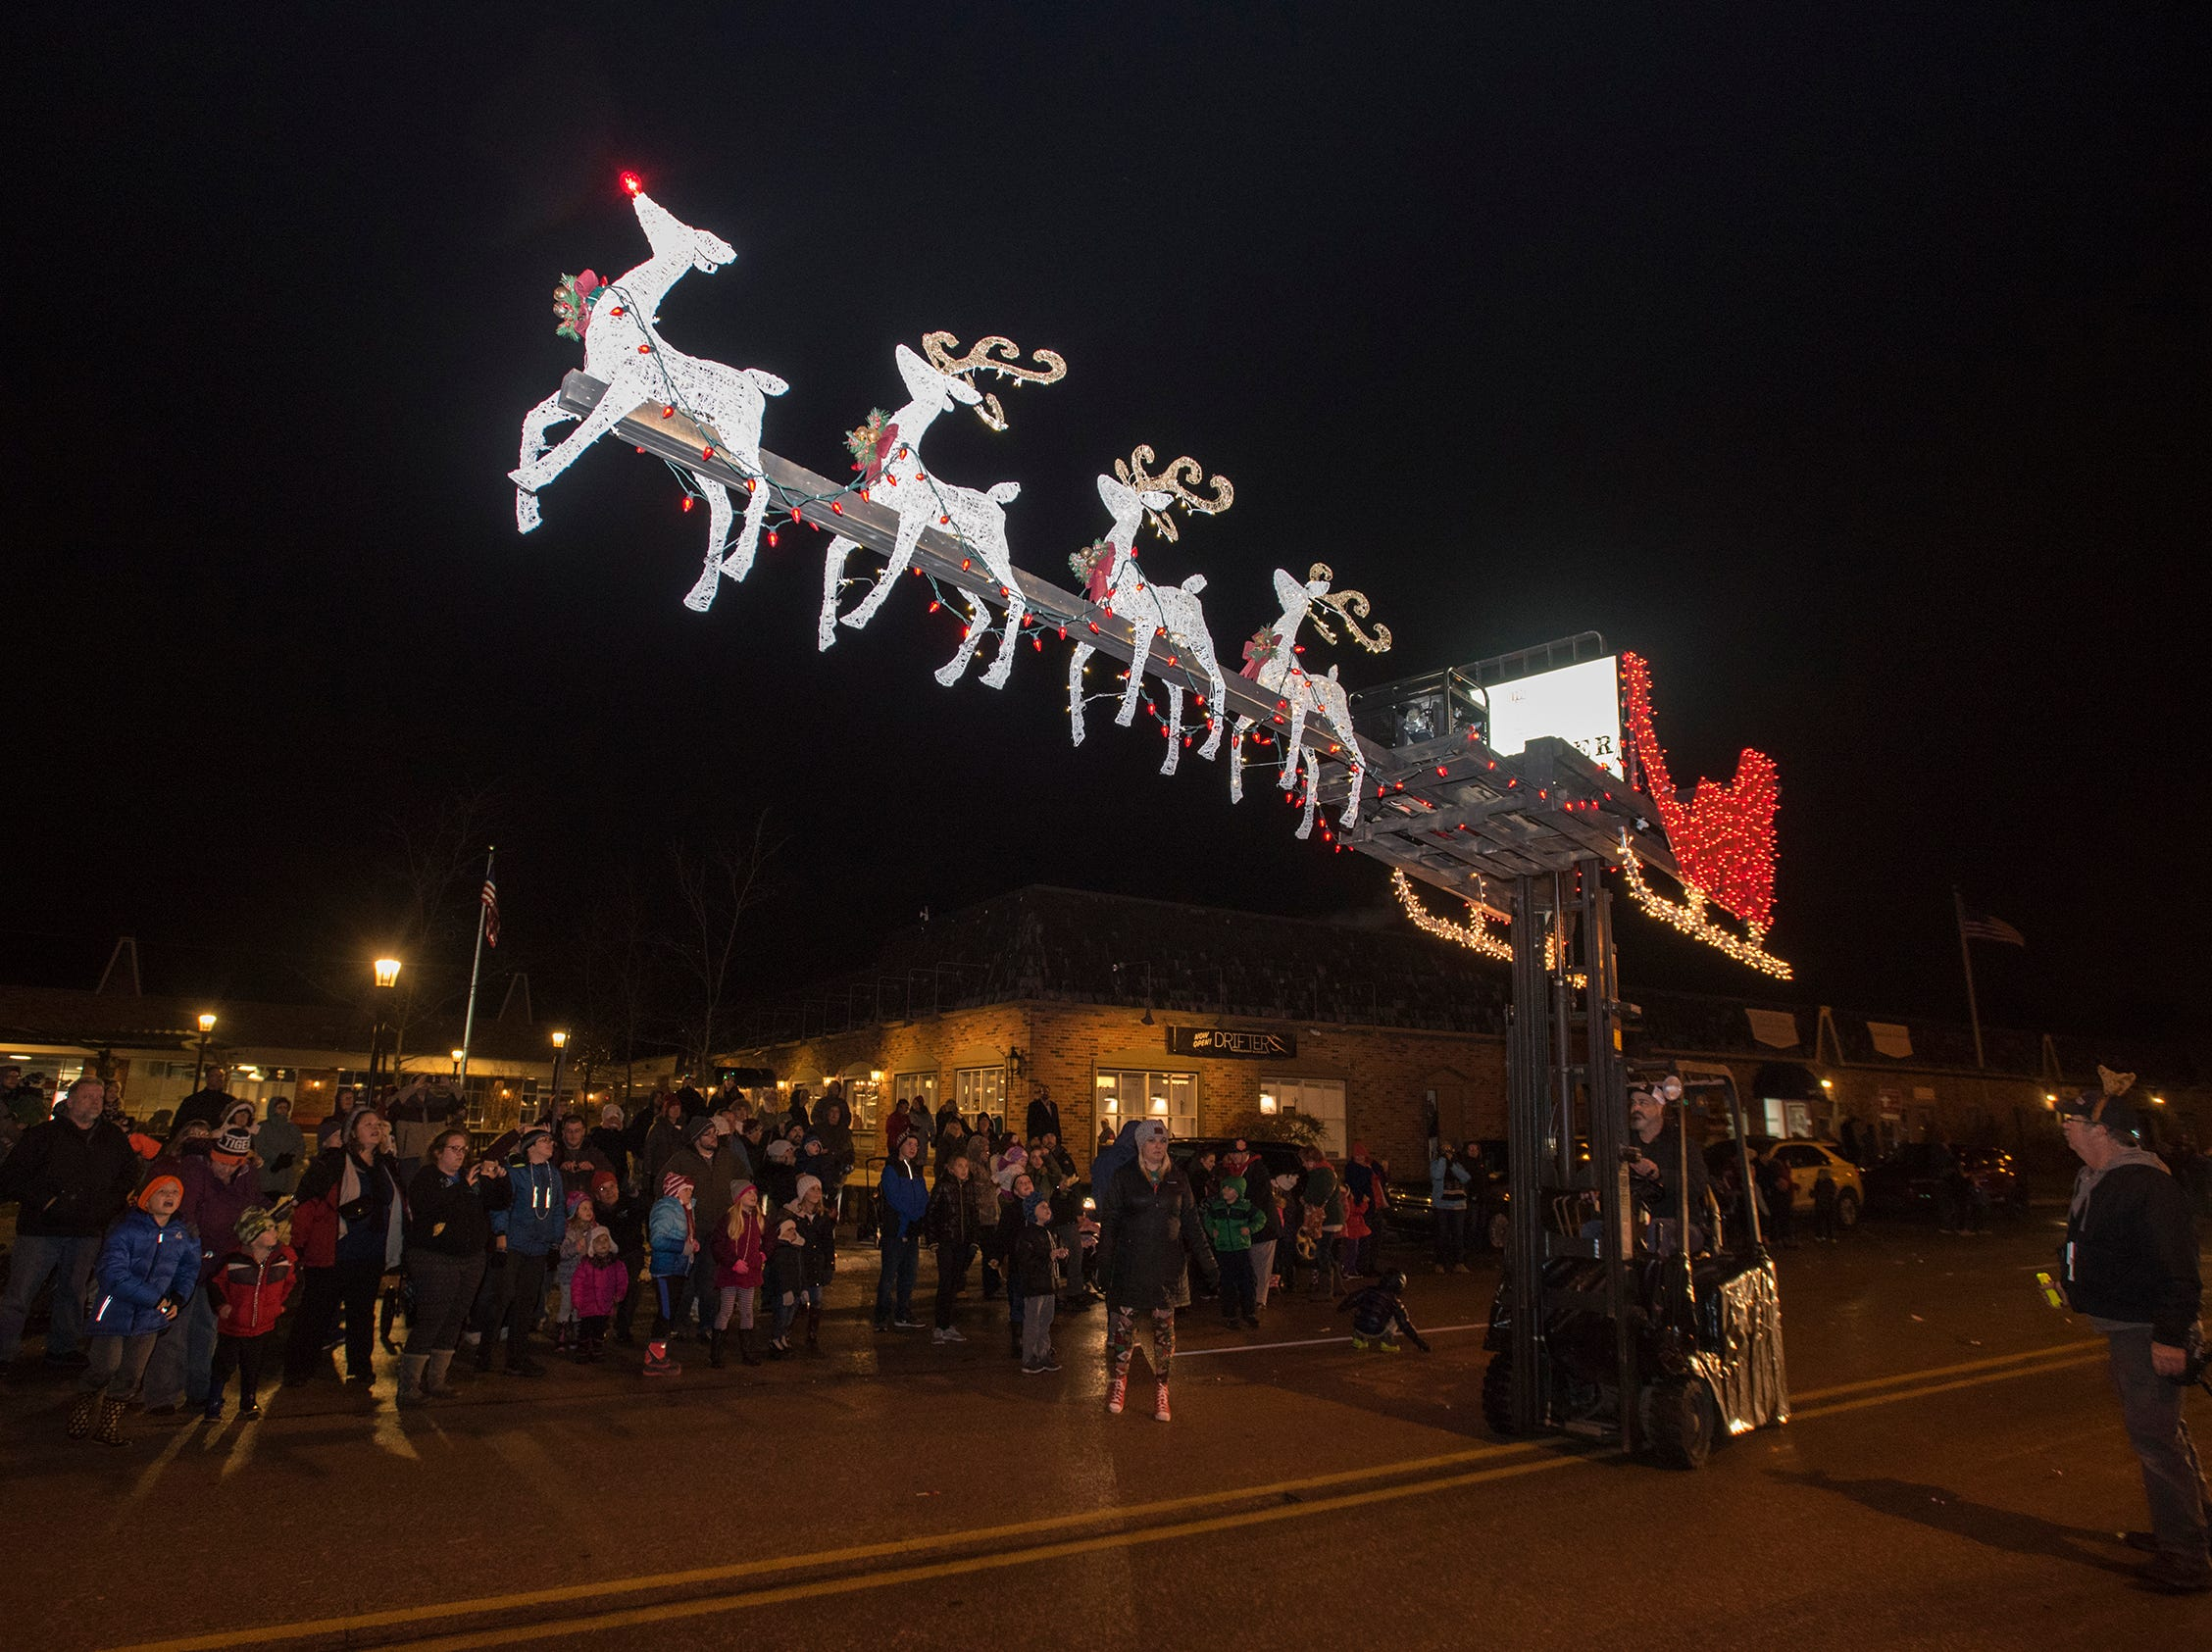 A forklift carries light-up reindeer and a sleigh from War Water Brewery down Riverside Avenue Friday, Nov. 16, 2018 during St. Clair's Lighted Santa Parade.